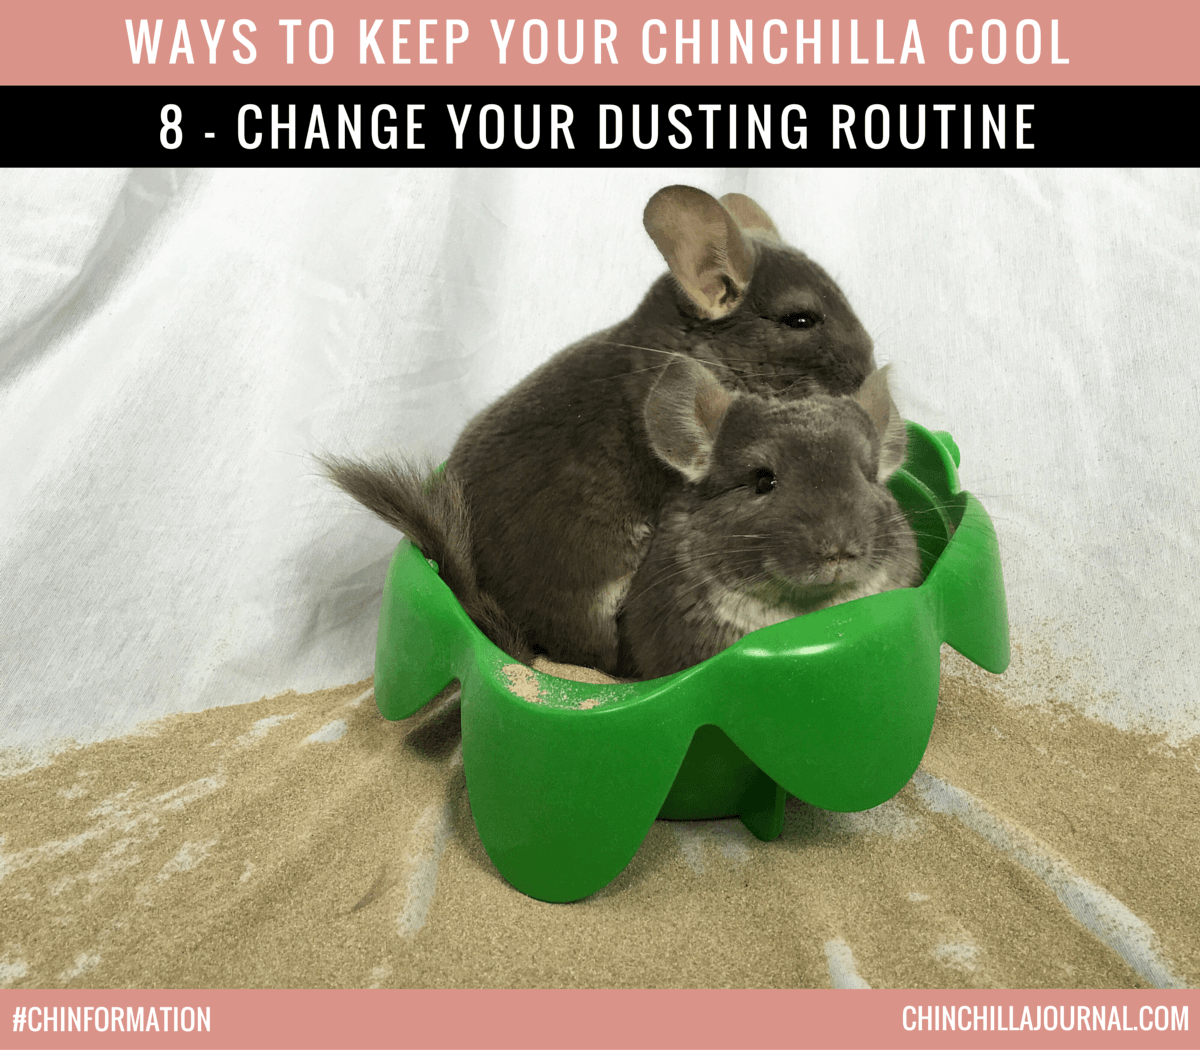 Ways To Keep Your Chinchilla Cool 8 - Change Your Dusting Routine